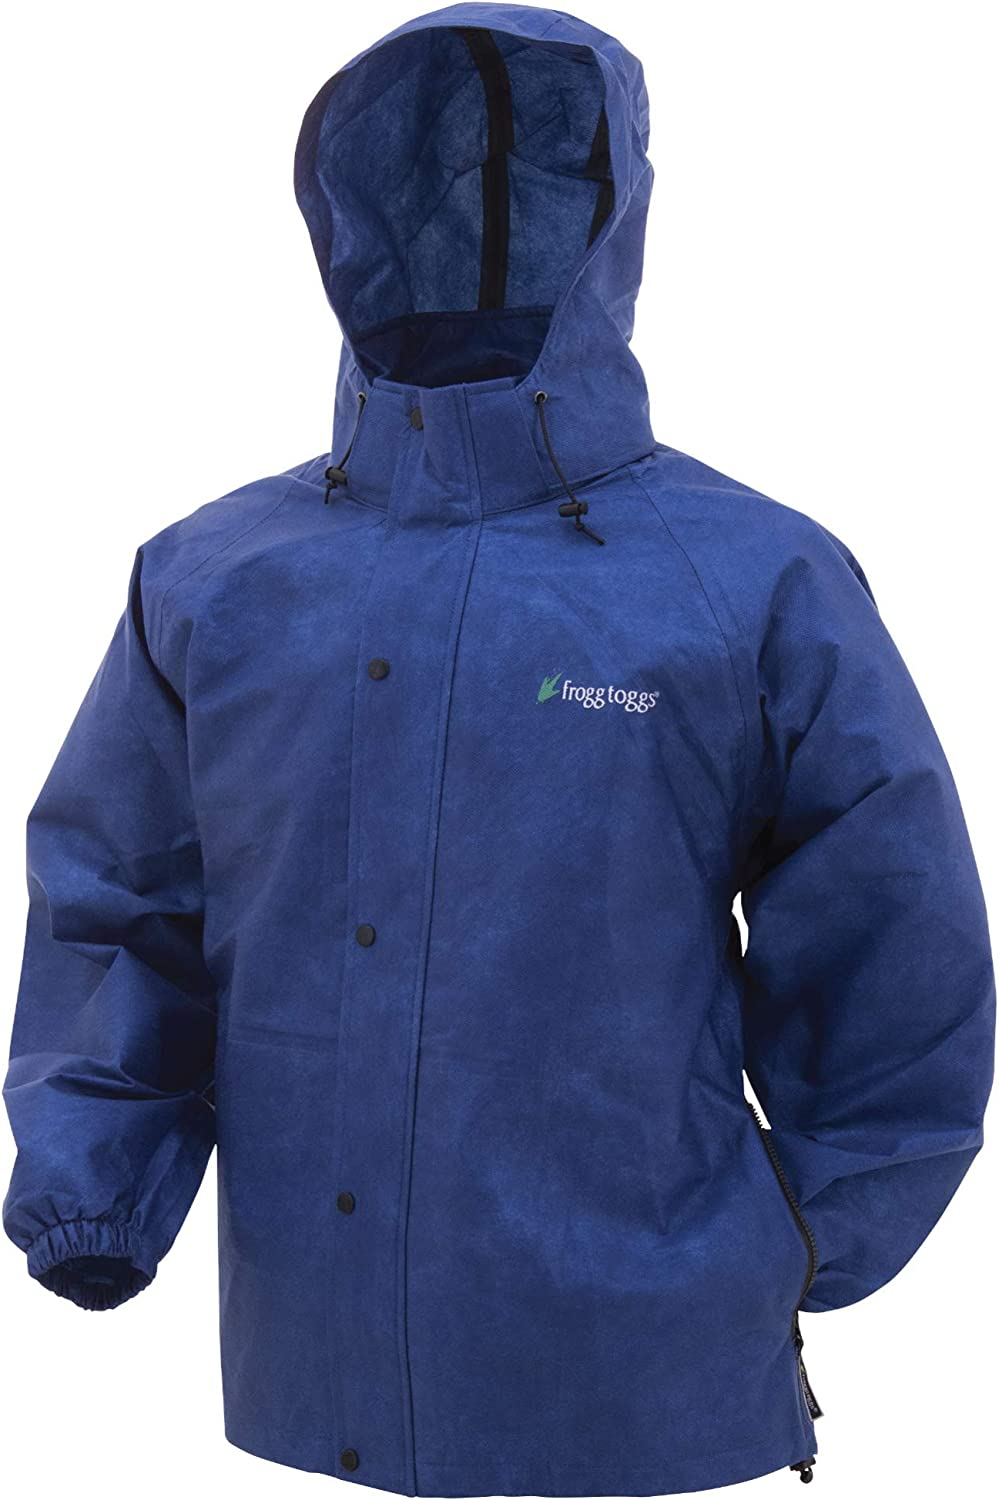 FROGG TOGGS Men's Max 42% OFF Classic Pro Breathable Memphis Mall Waterproof Action Rain